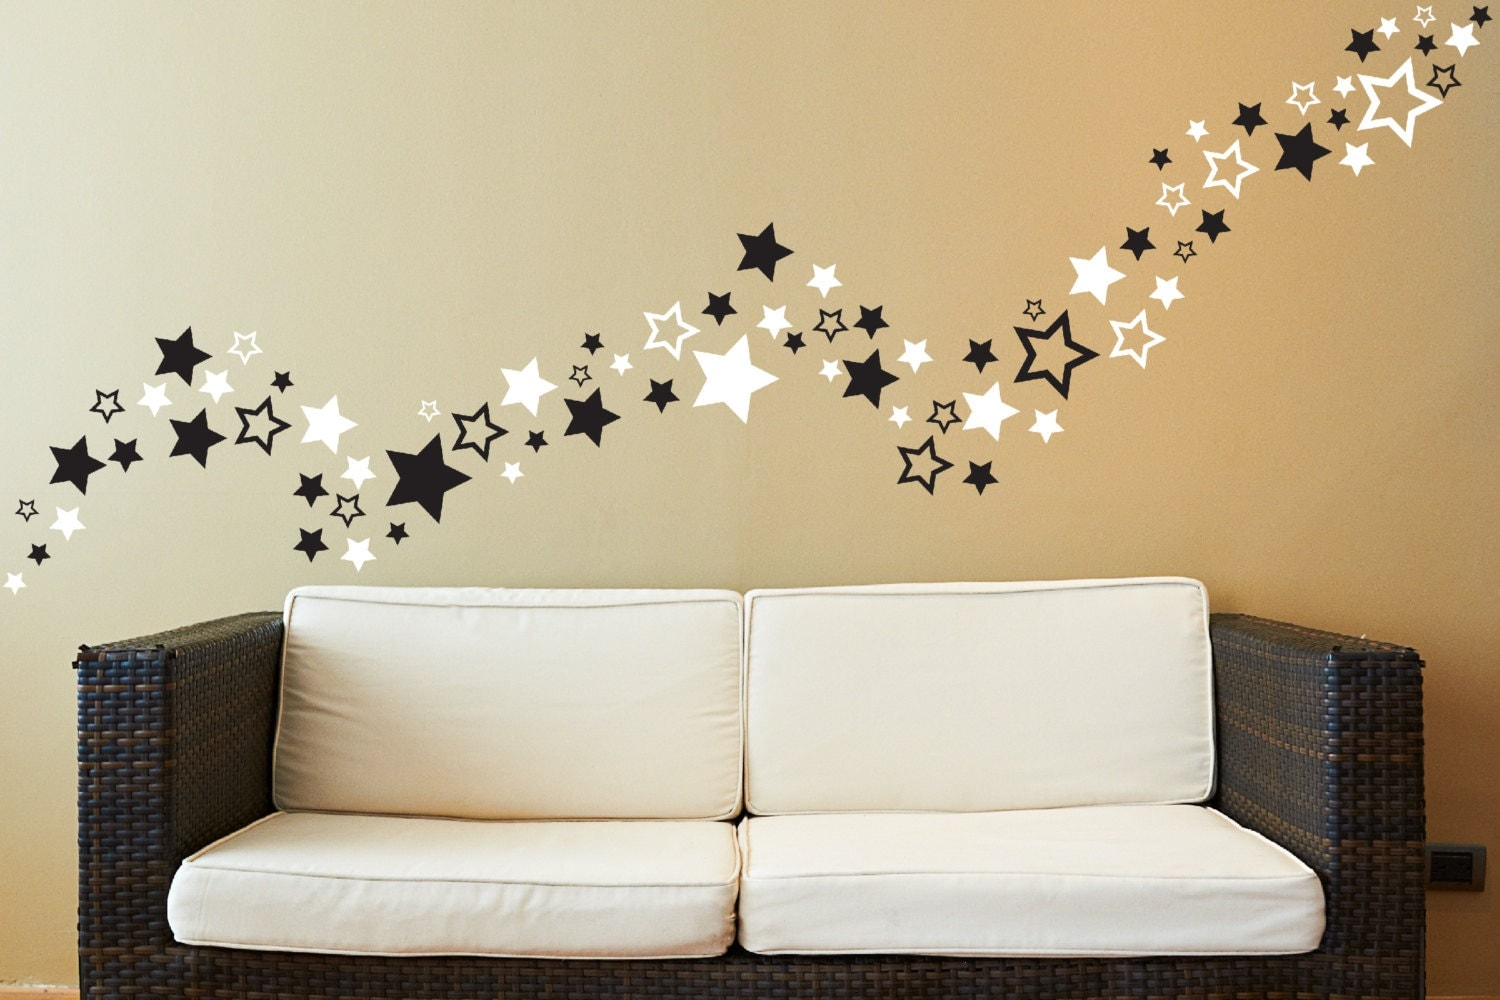 Star Wall Decor Ideas: 80 Star Wall Decals Stars Wall Decals Decals Star